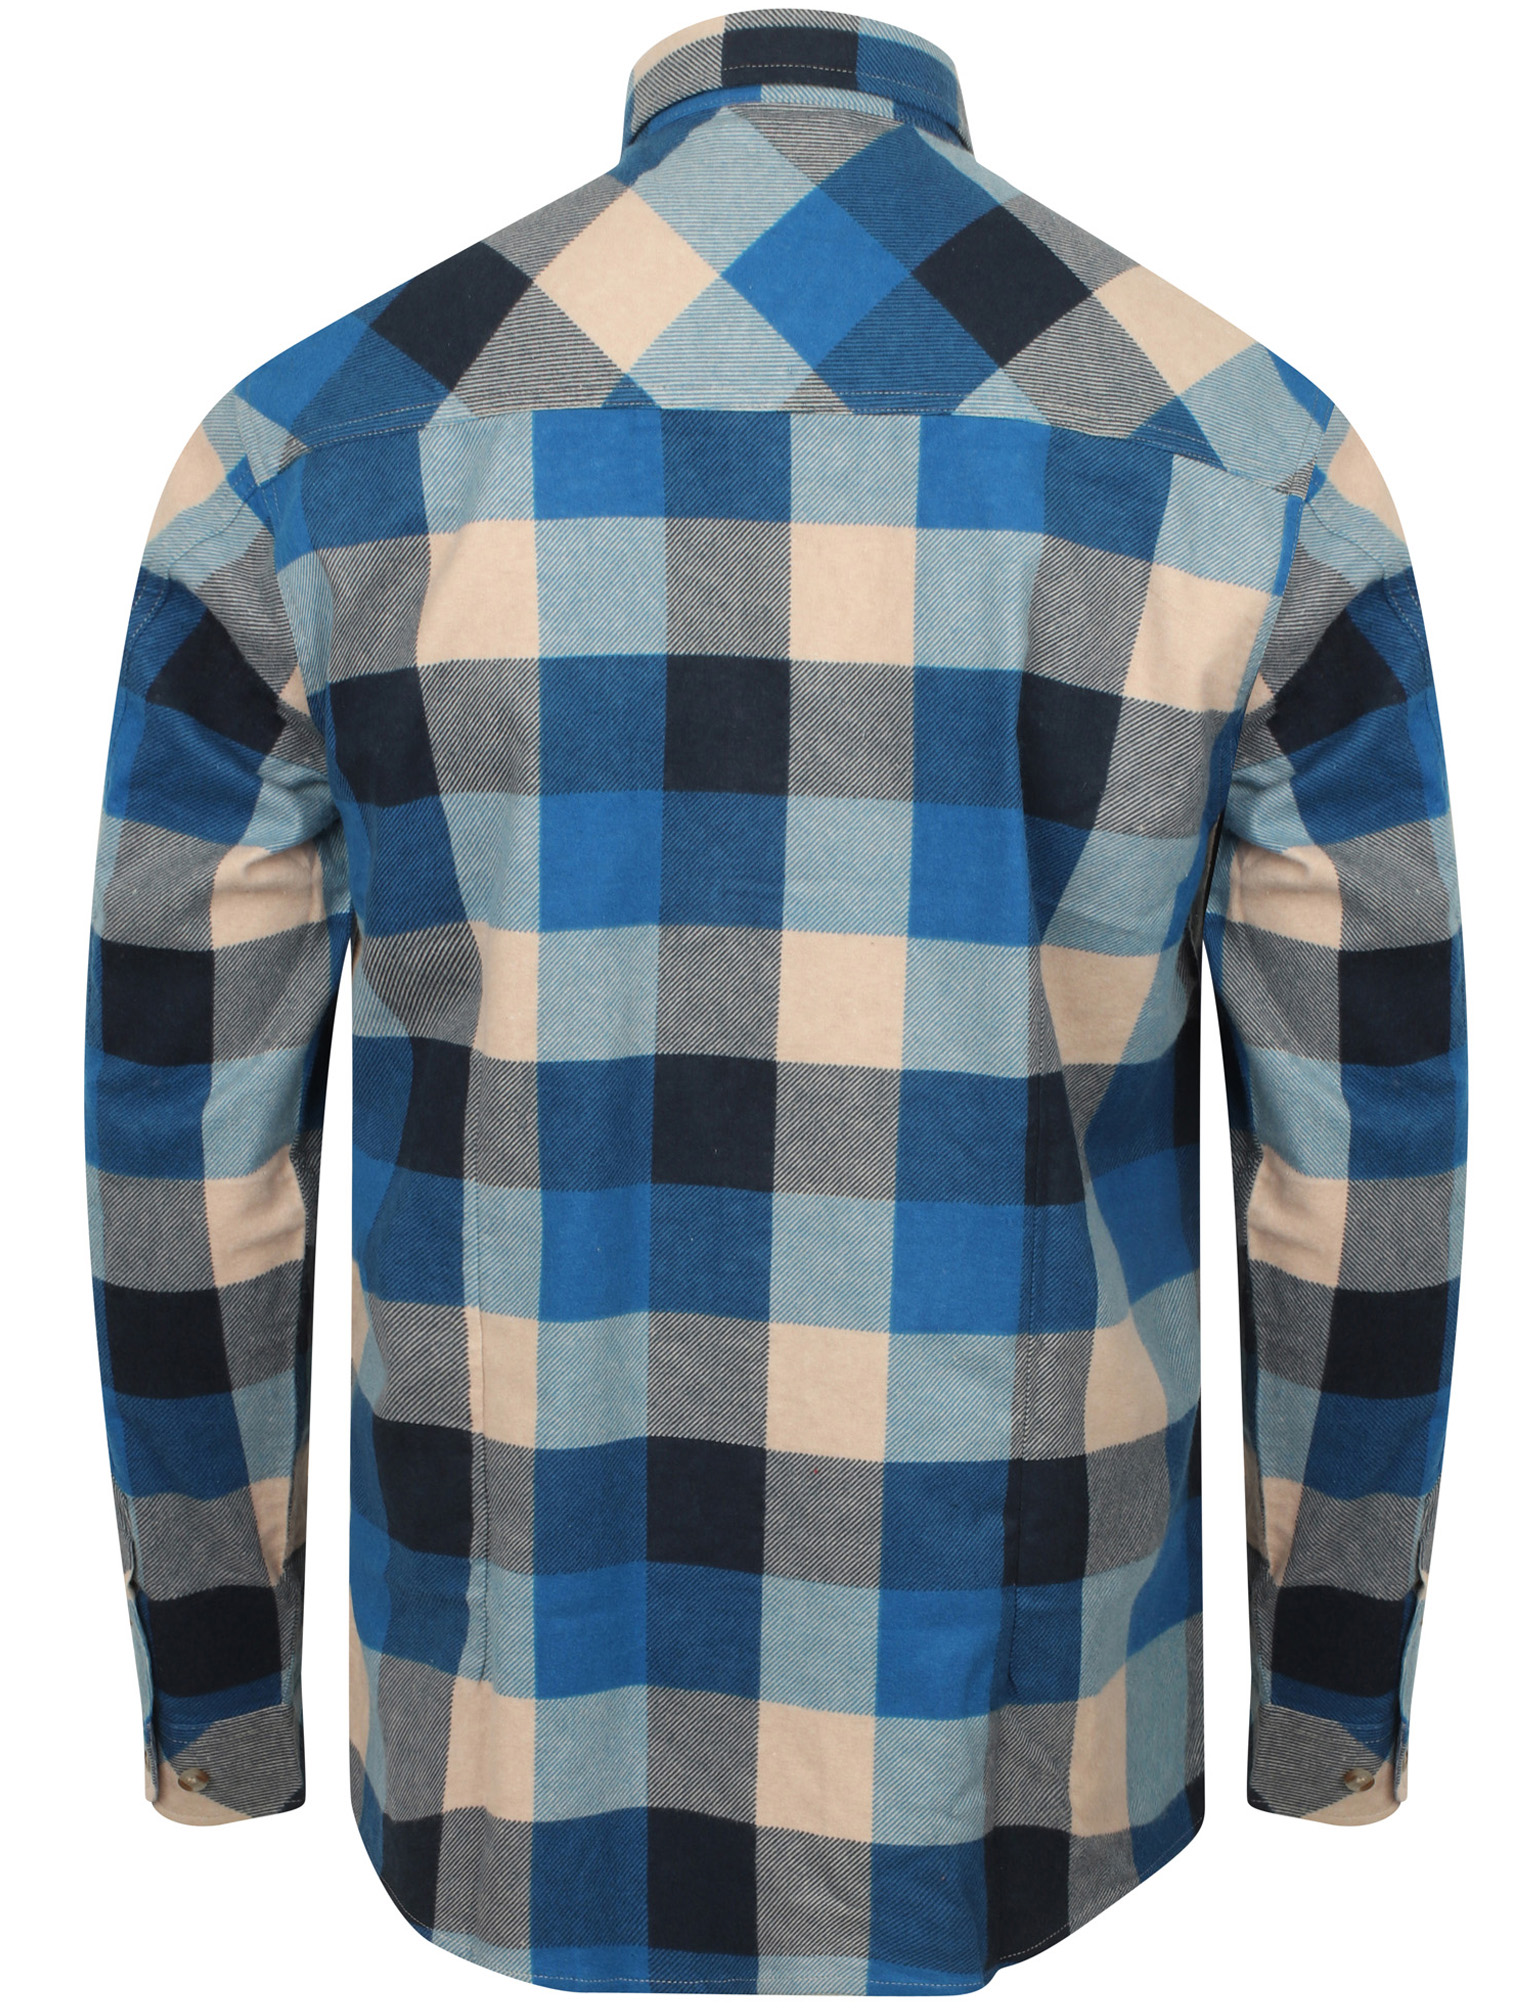 New-Mens-Tokyo-Laundry-Cotton-Long-Sleeve-Checked-Flannel-Shirt-Size-S-XL thumbnail 43